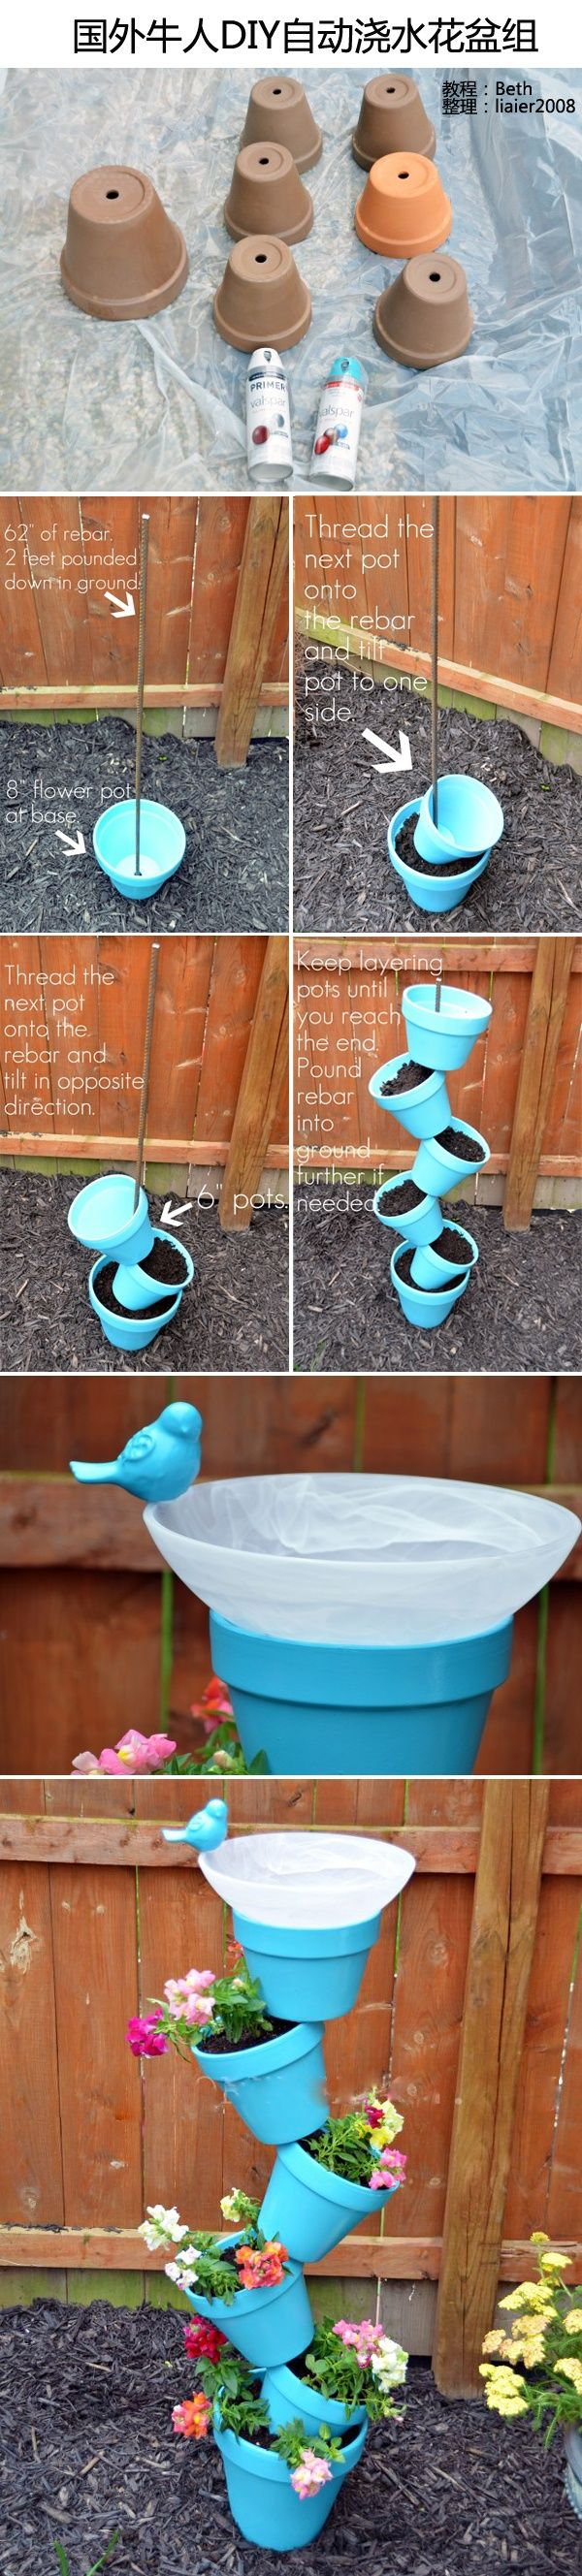 Do this but only like 3 high with flower pot watering can fountain head on top pouring into terra cotta tiered pot bird bath. With pump hose running up with rebar to fountain head.